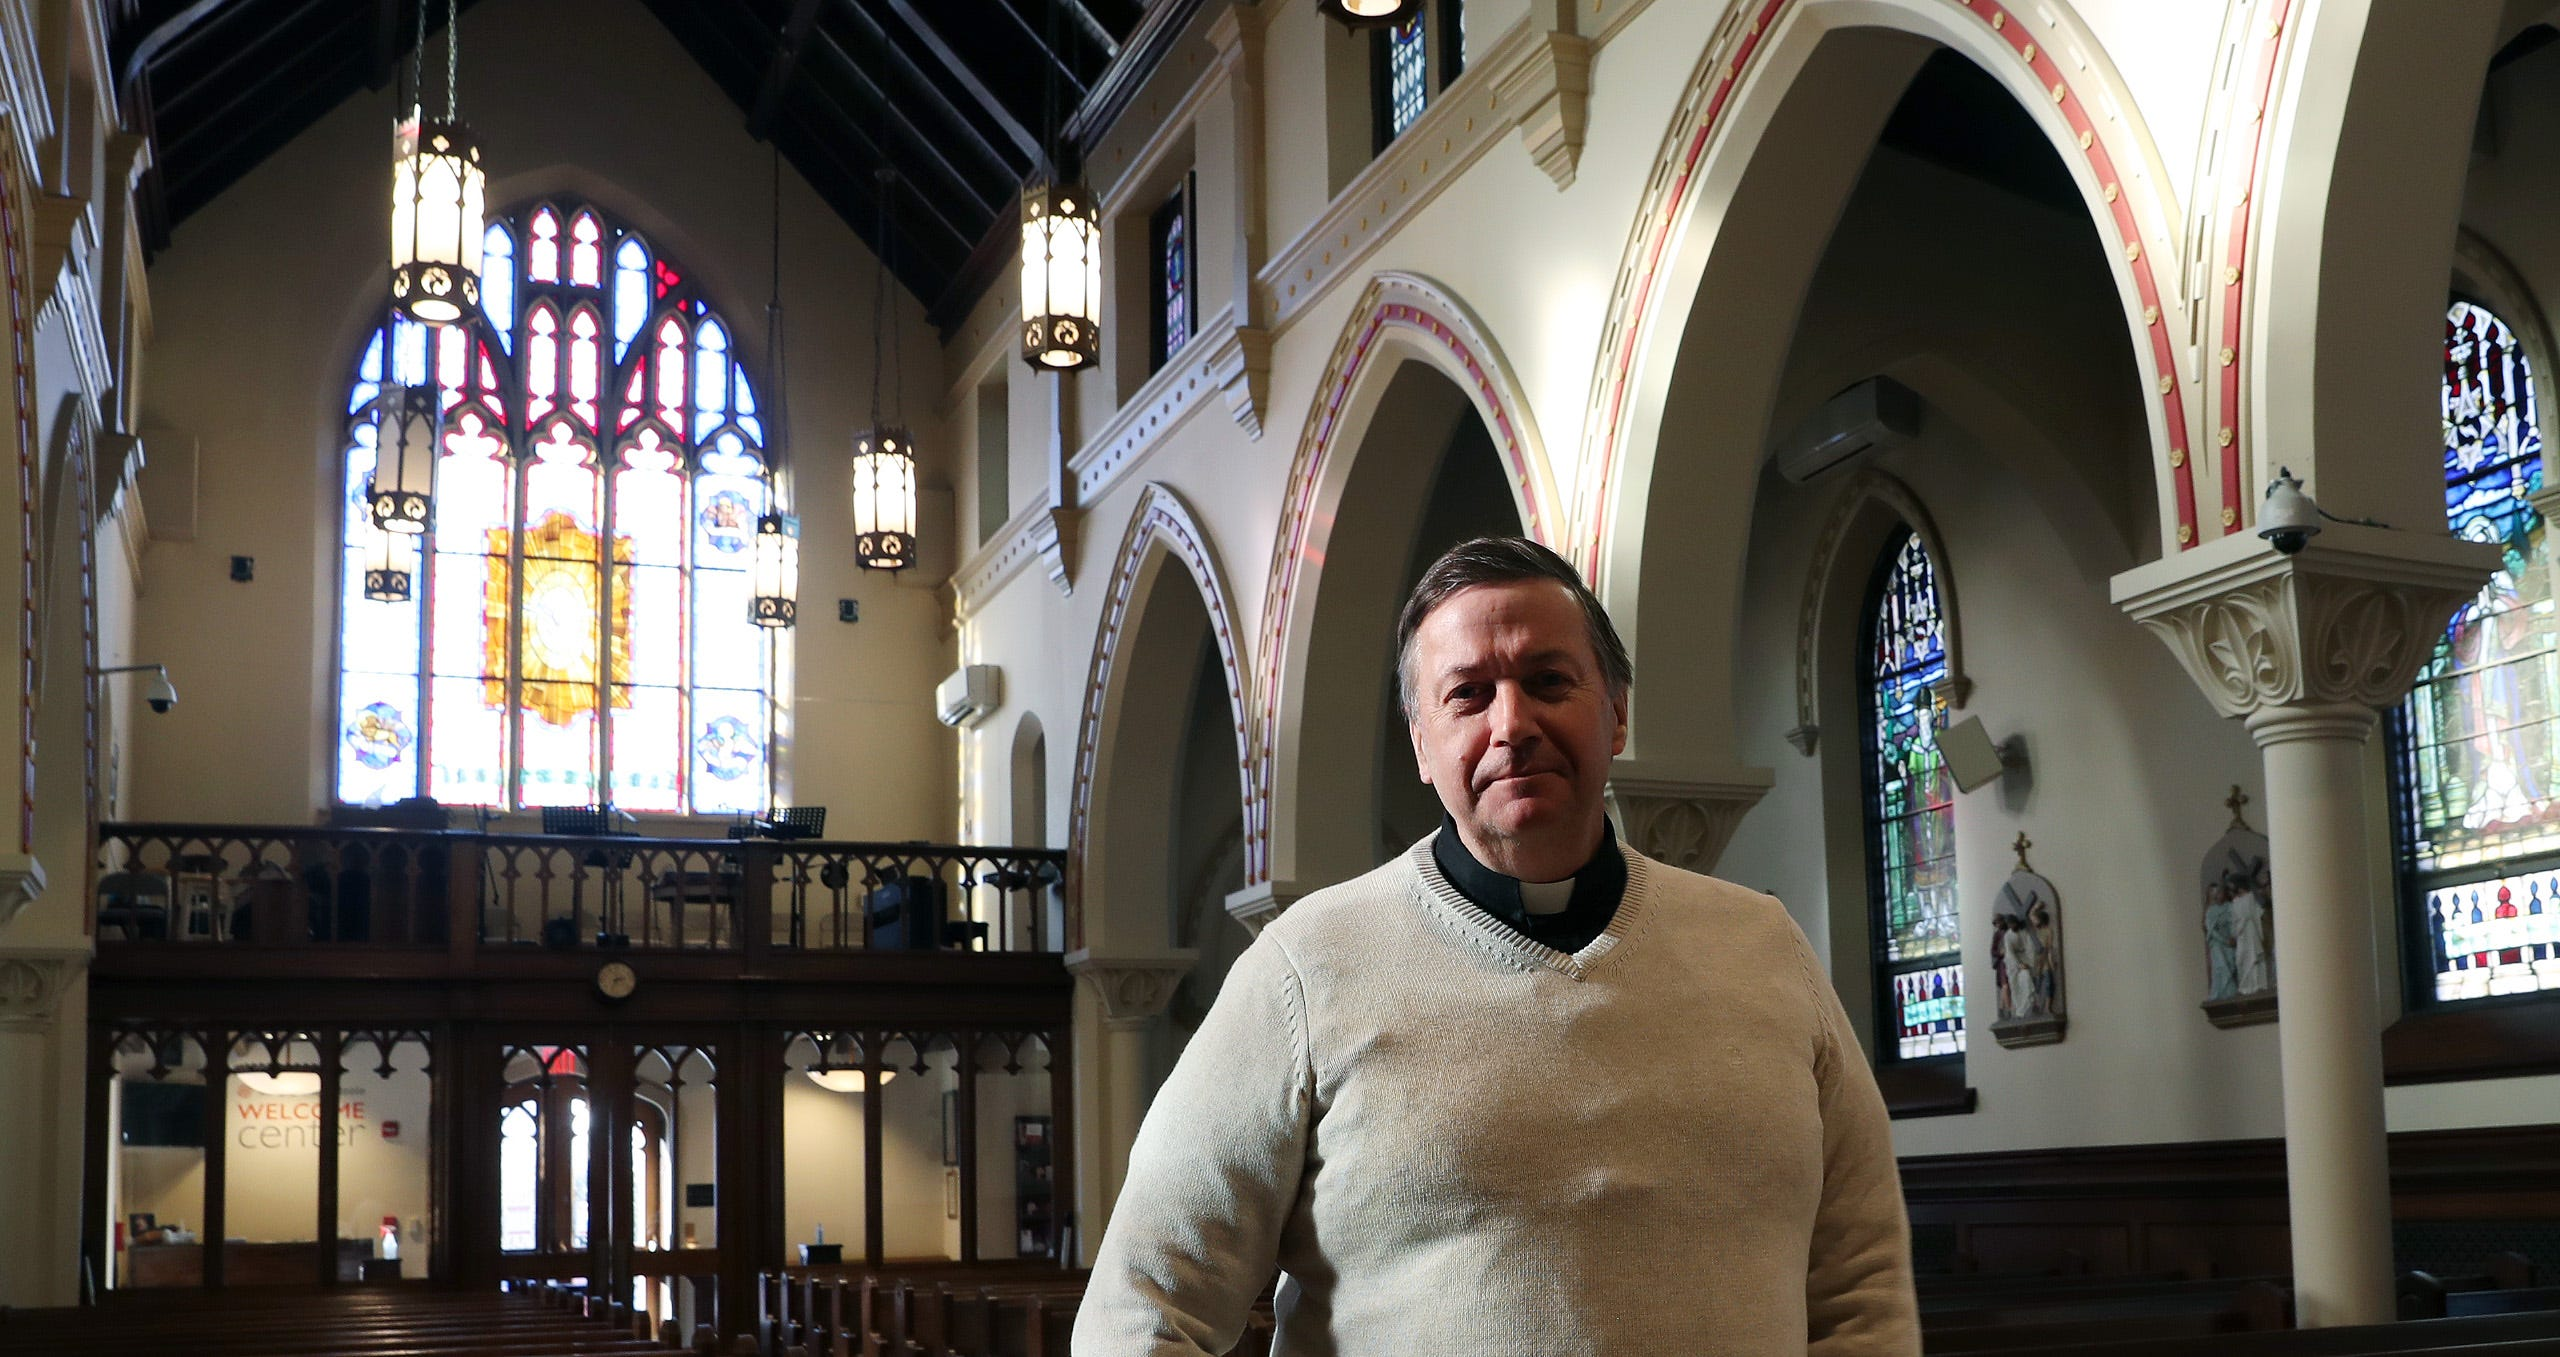 As we all look forward to the day when the pandemic is behind us, spiritual leaders like the Rev. Richard Gill, pastor of Saint Lawrence O'Toole church in Brewster, ponder what that might look like. Gill is shown here inside the church in Brewster.